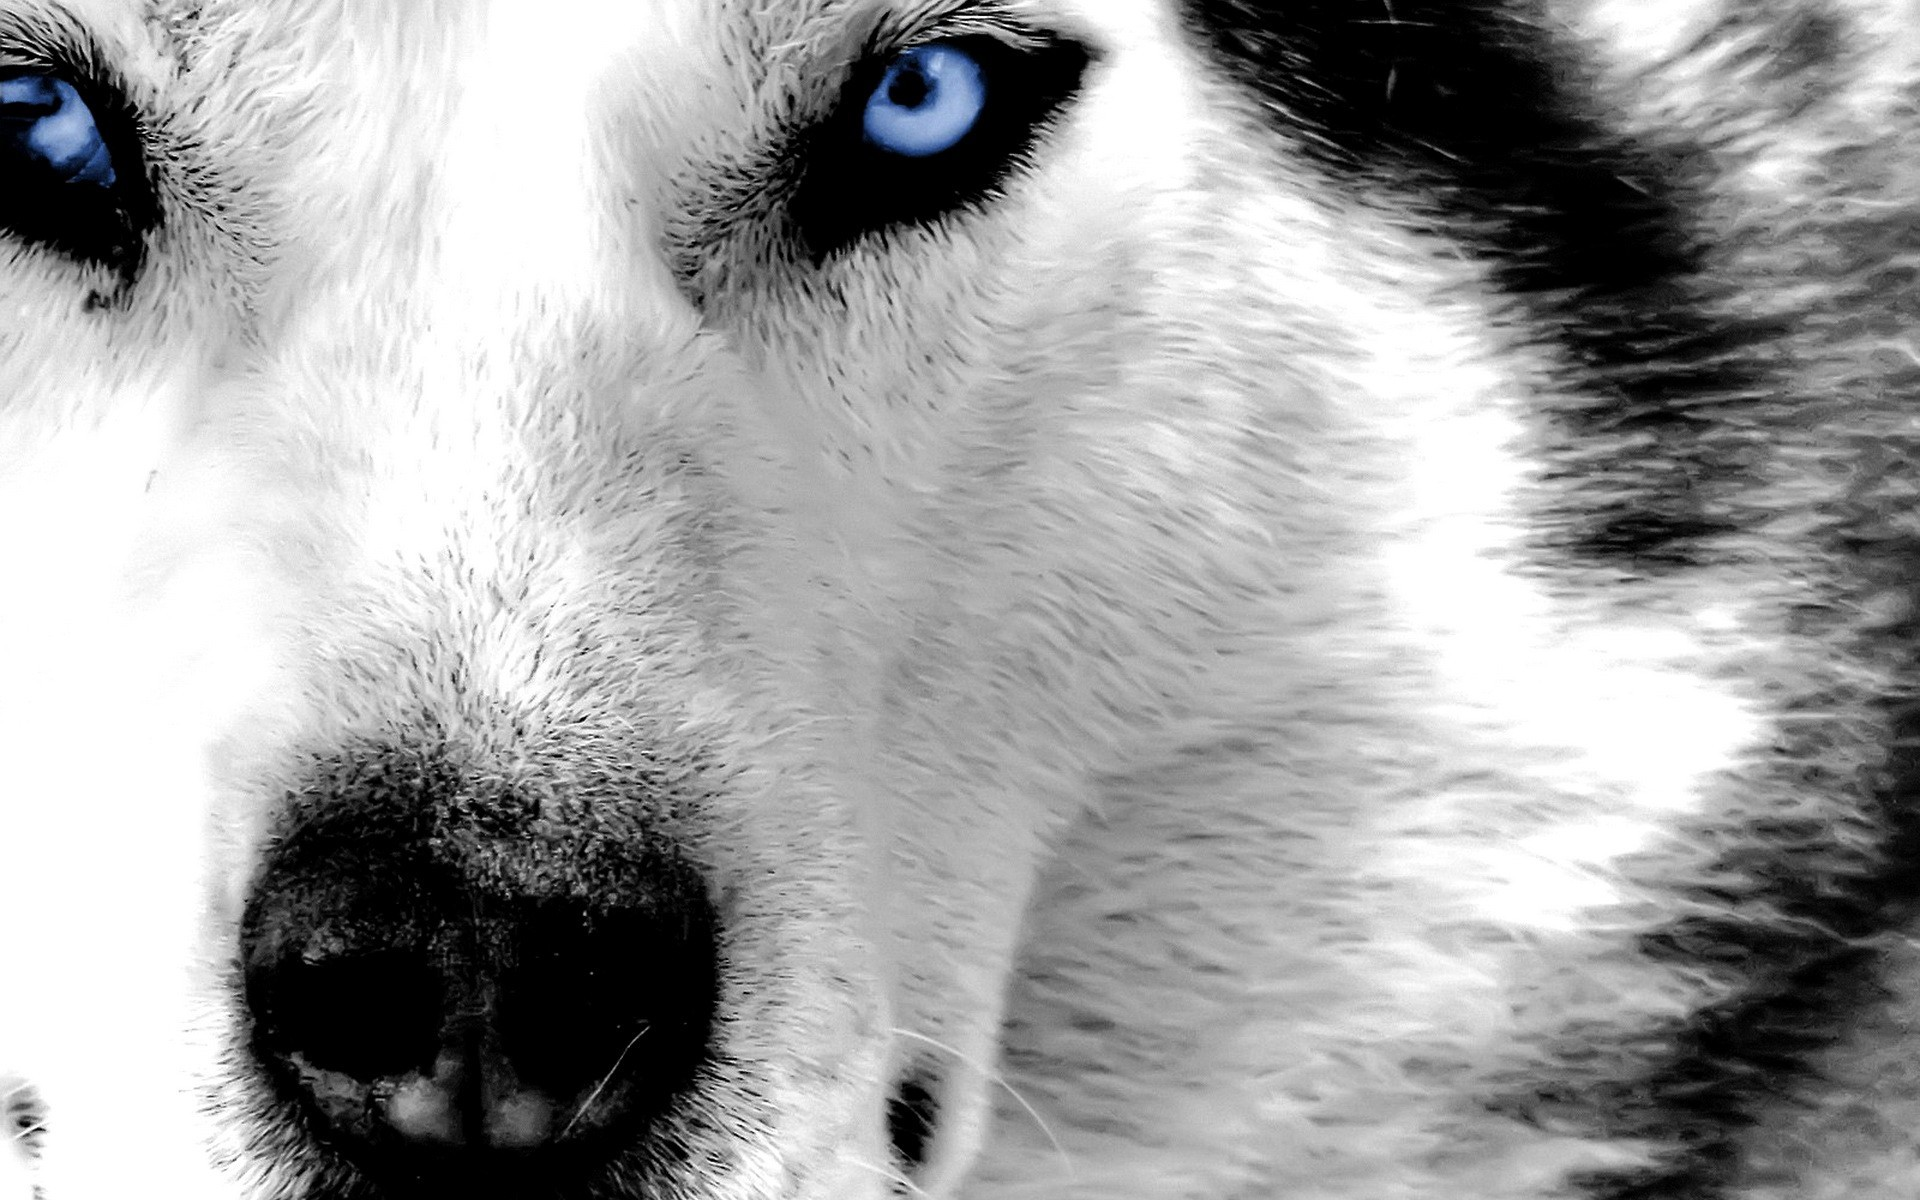 pictures of huskies download the best hd husky wallpapers for ios and android huskies pictures of